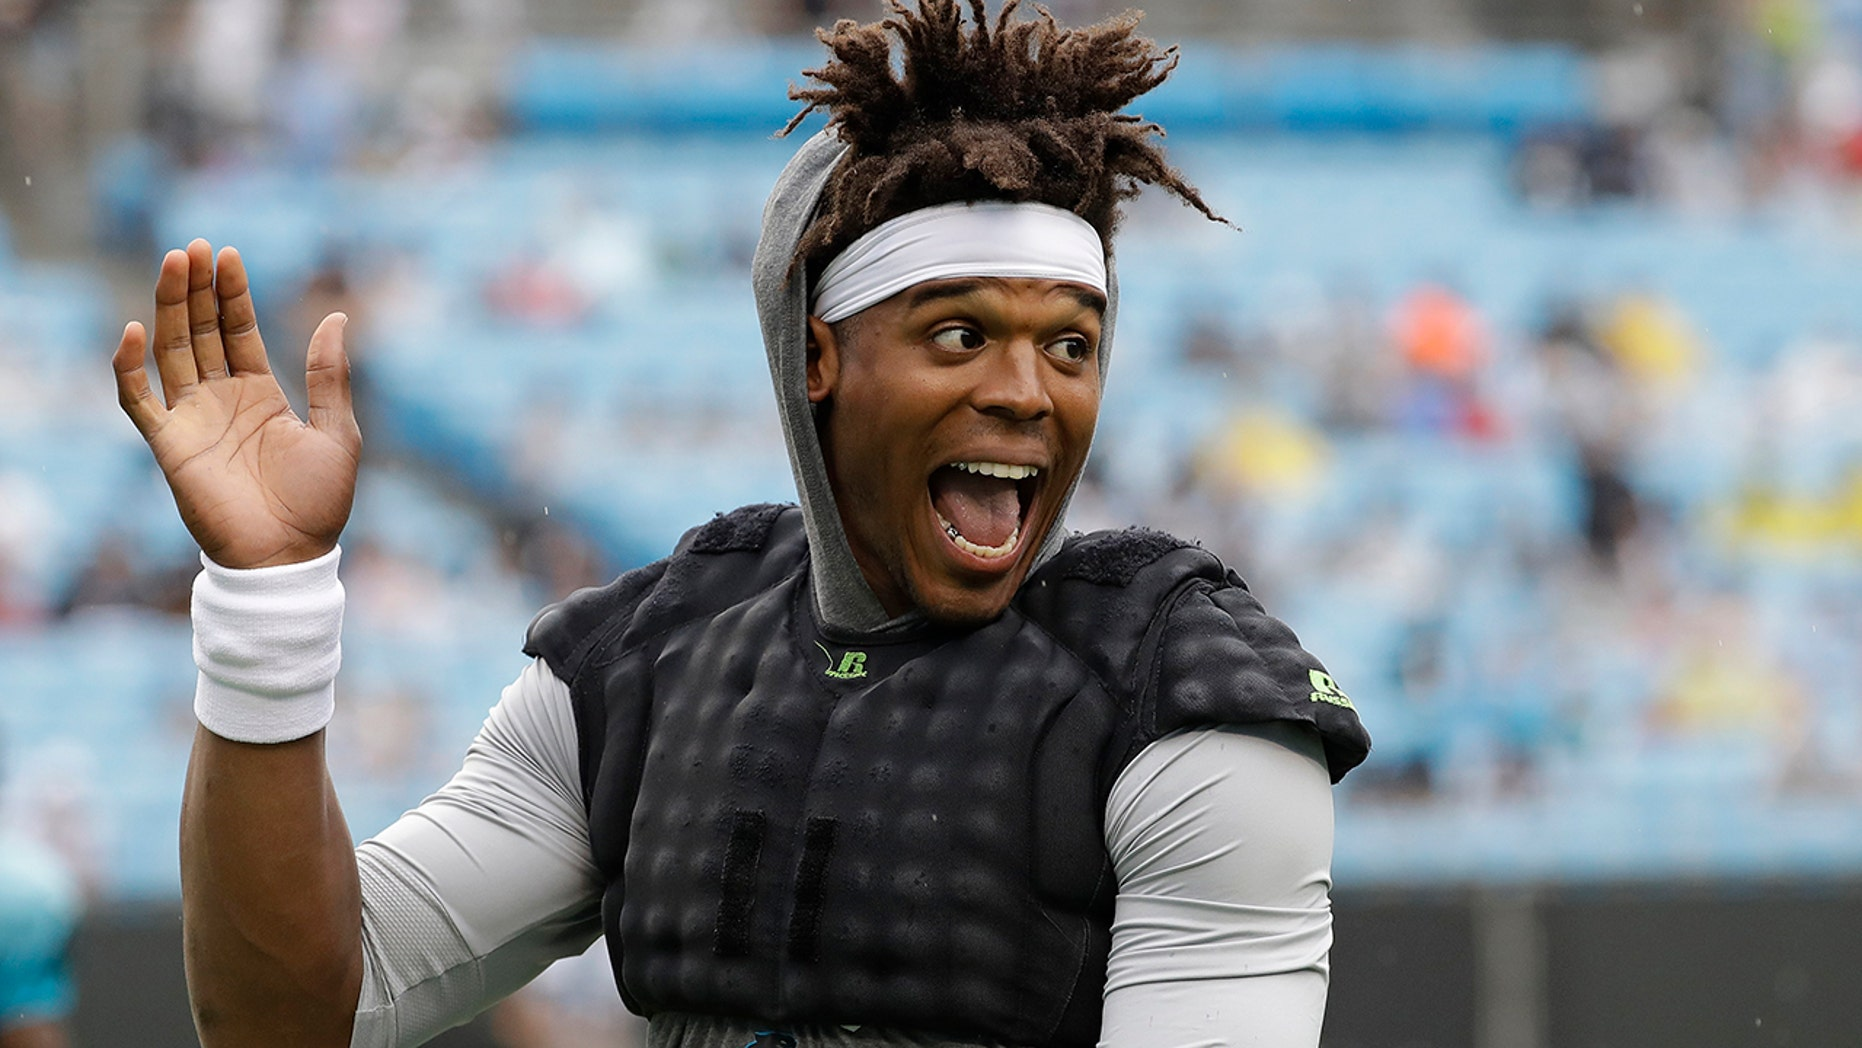 Carolina Panthers quarterback Cam Newtonwaves to the crowd during a Fan Fest practice at the NFL football team's training camp in Charlotte, N.C., Friday, Aug. 2, 2019. (AP Photo/Chuck Burton)